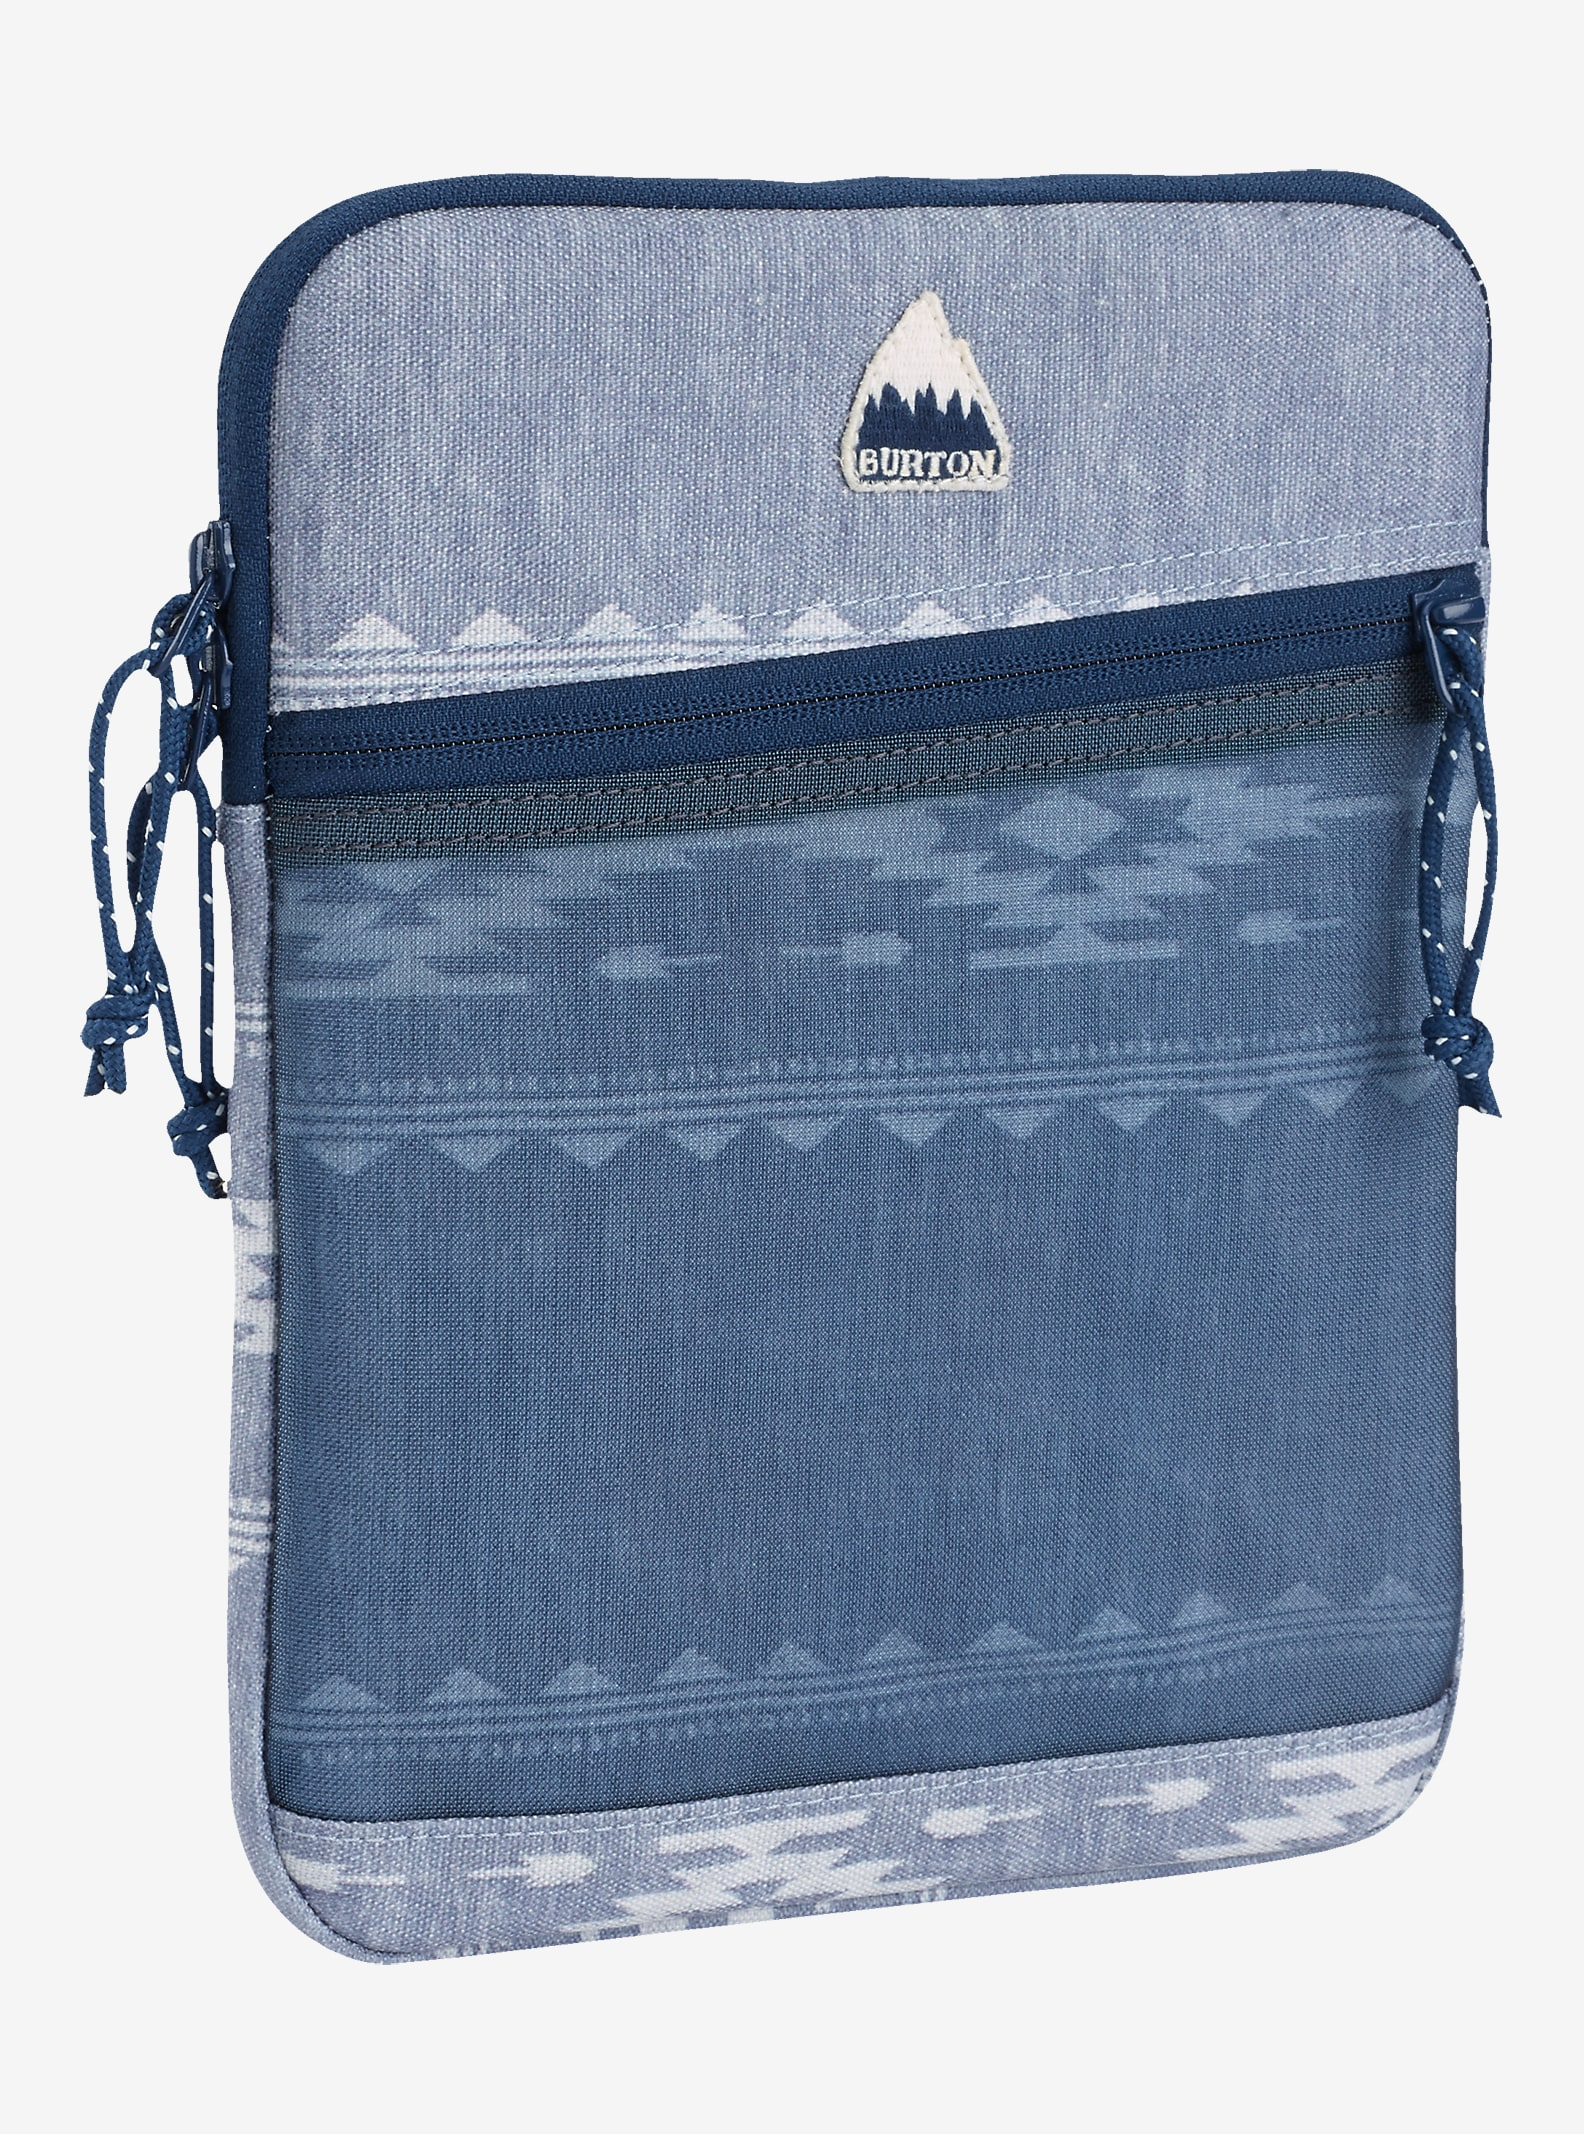 Burton Hyperlink 10in Tablet Sleeve shown in Famish Stripe